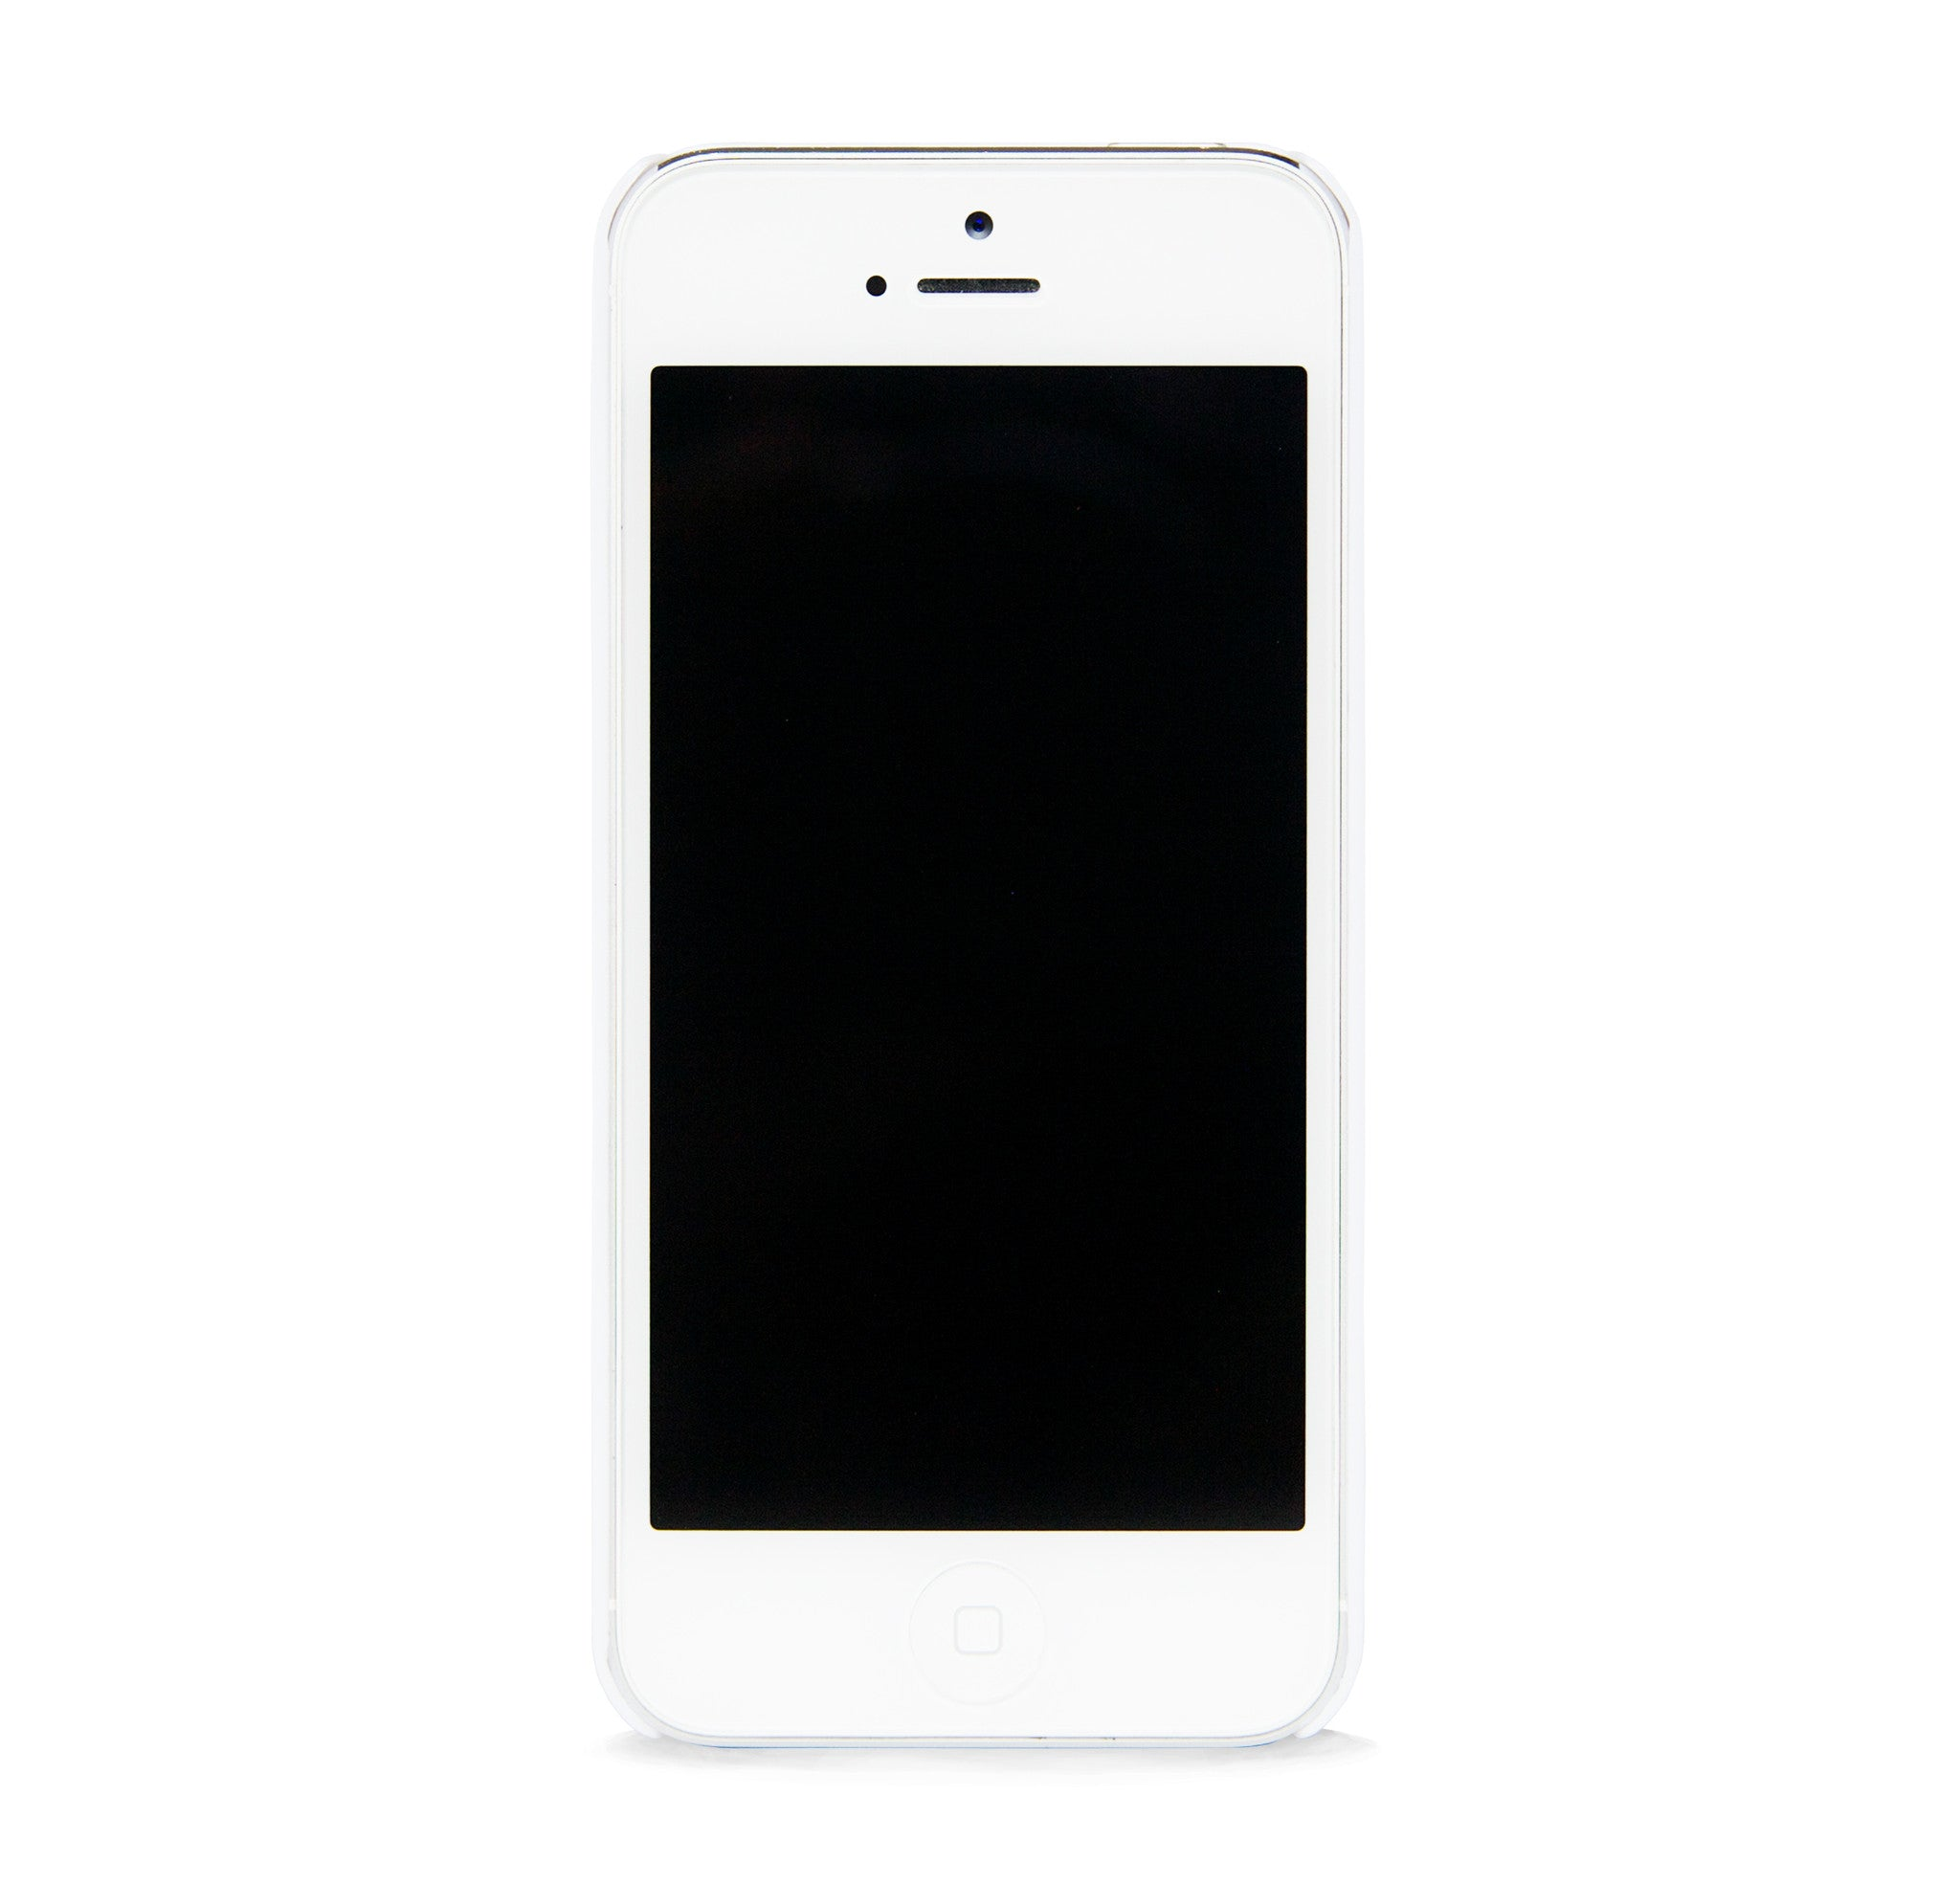 GRID IN SILVER FOR IPHONE 5/5S